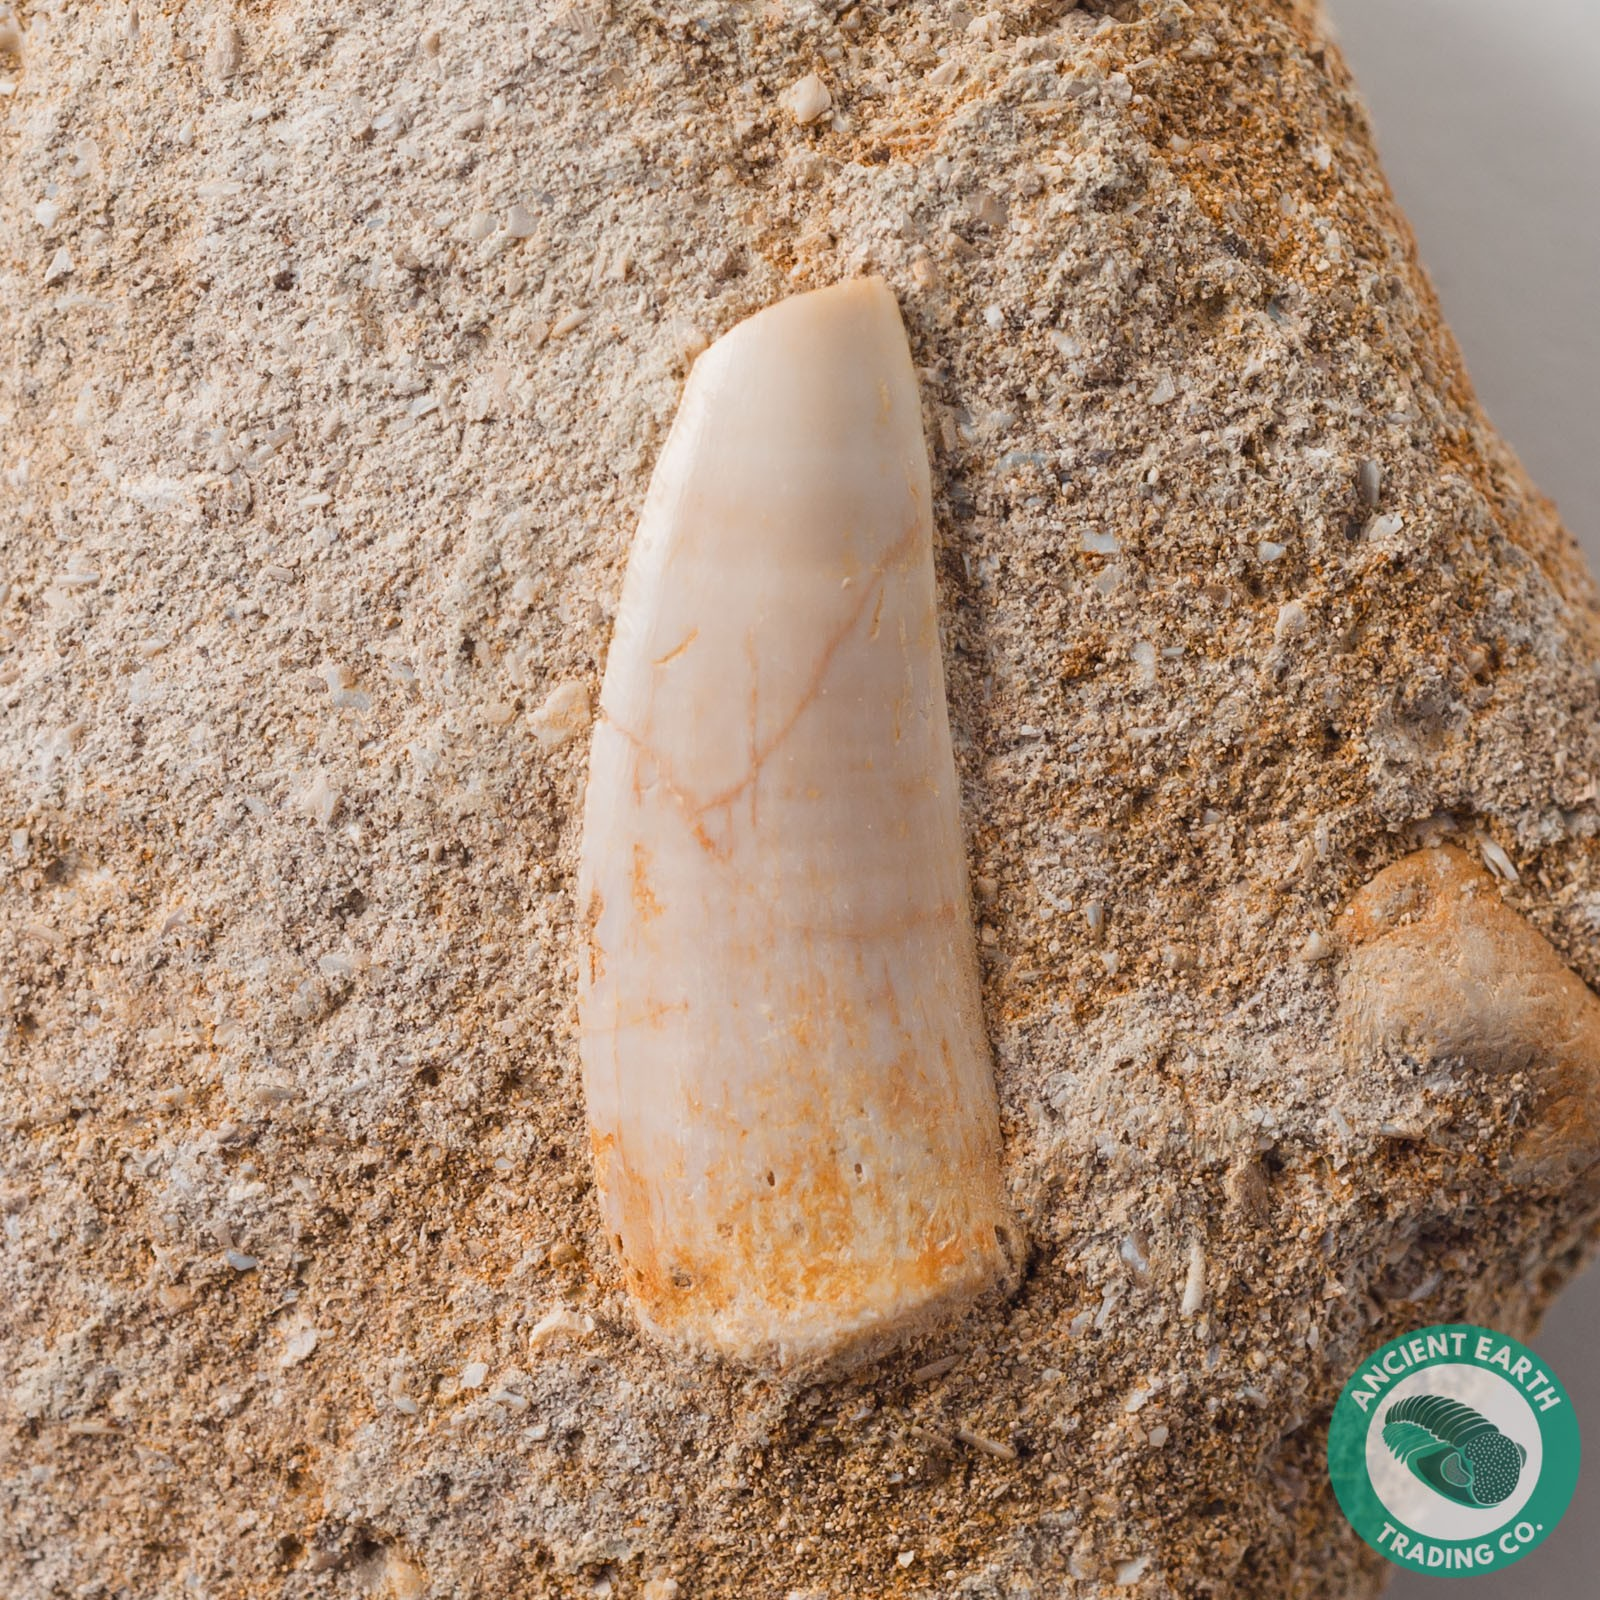 1.12 in. Enchodus Fish Saber Tooth - Morocco